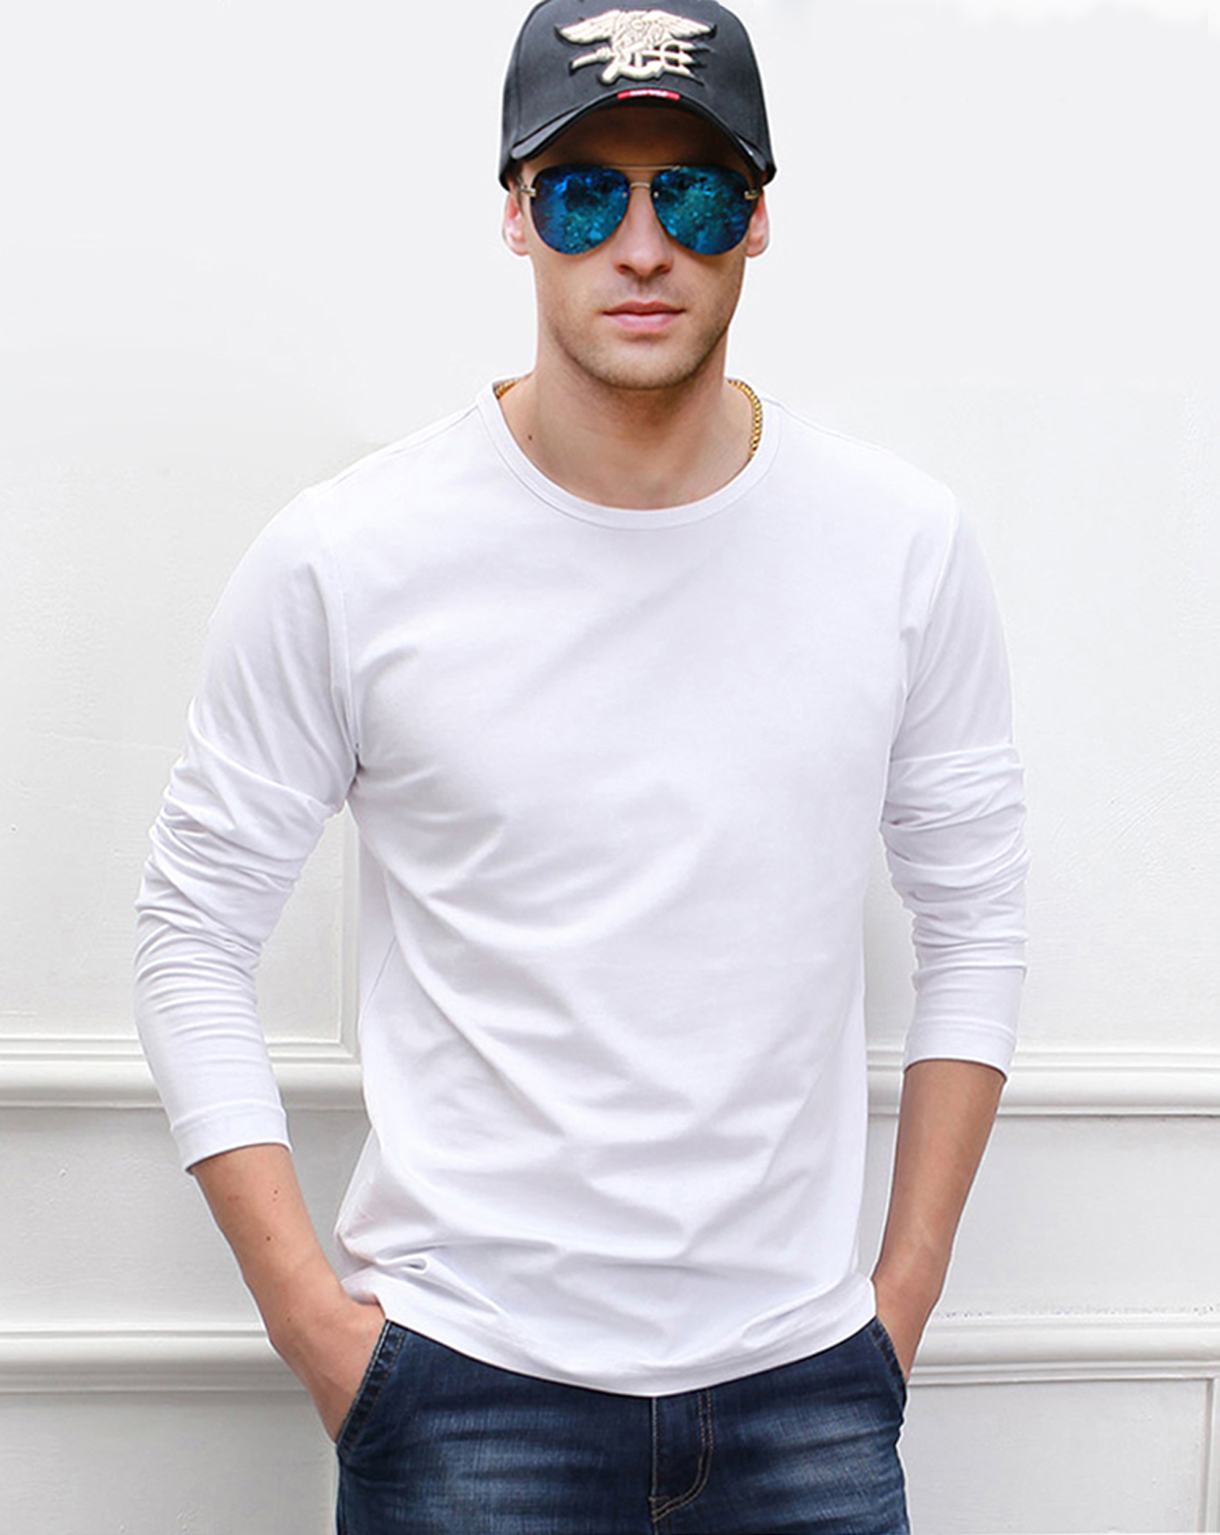 2019 Autumn Long Sleeve Men   T     Shirts   100% Cotton High Quality   T  -  Shirt   Solid Color Black White Gray Red Navy Bule All Size S-XXL